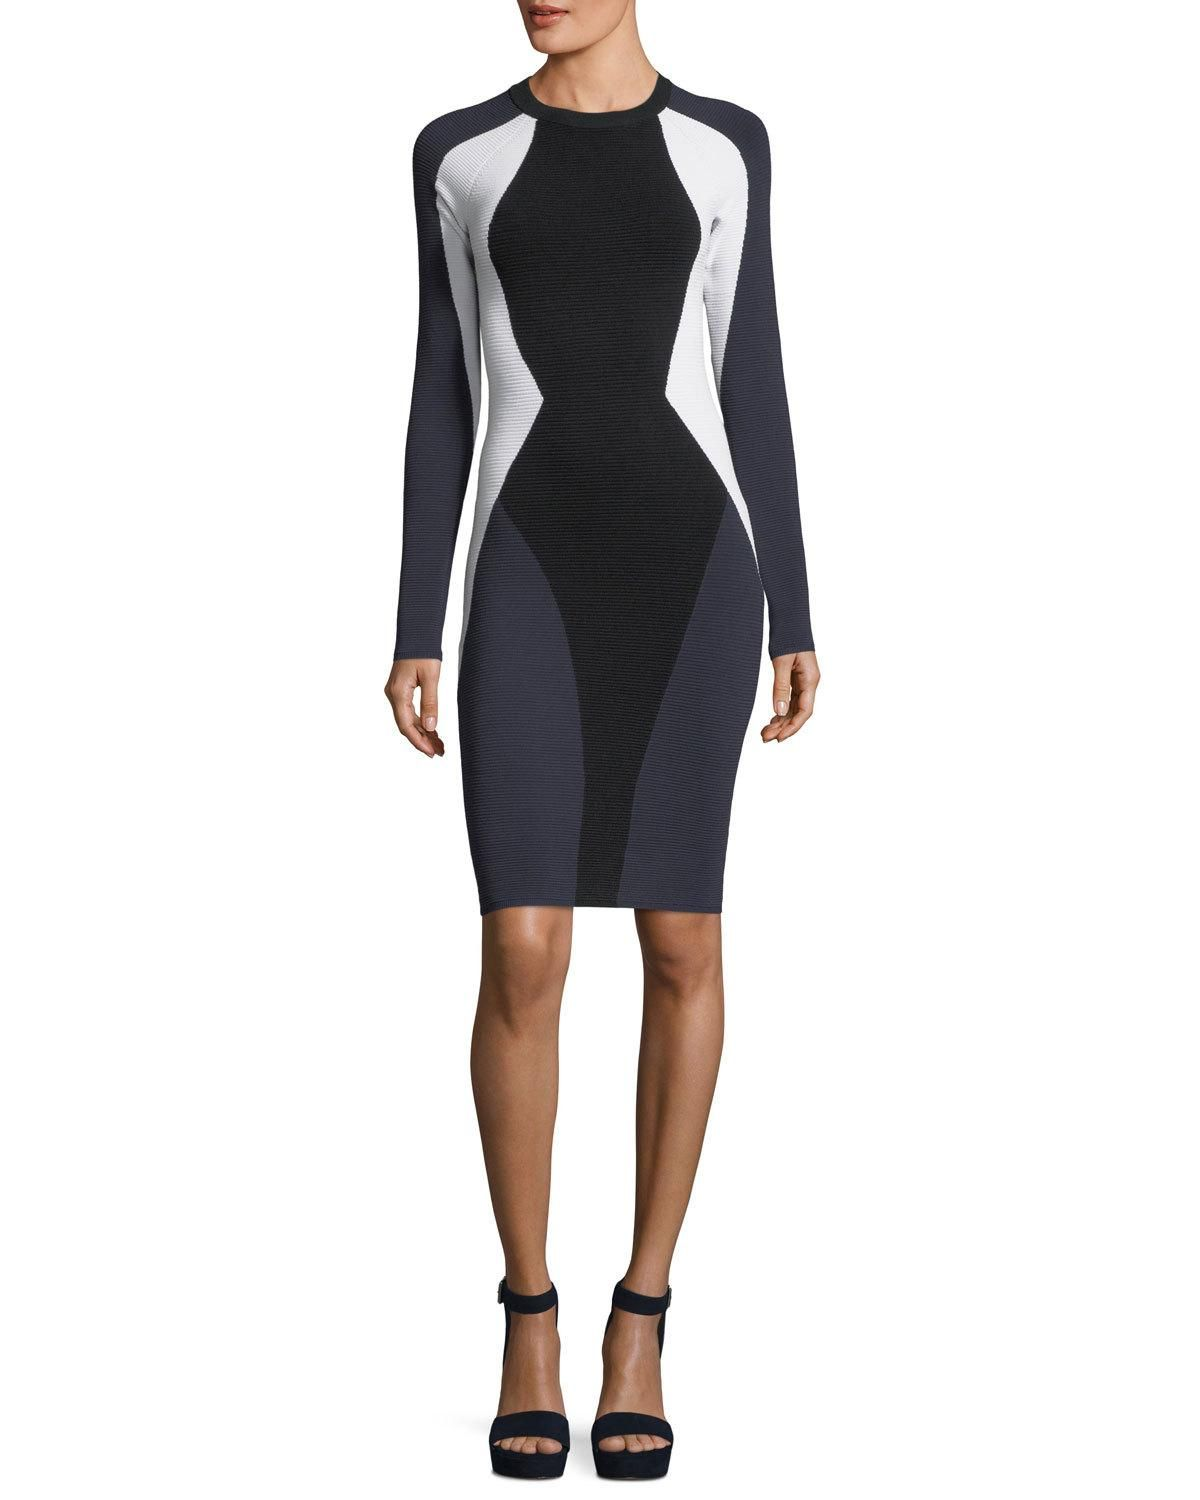 Longsleeve bodycon colorblock cutout dress products